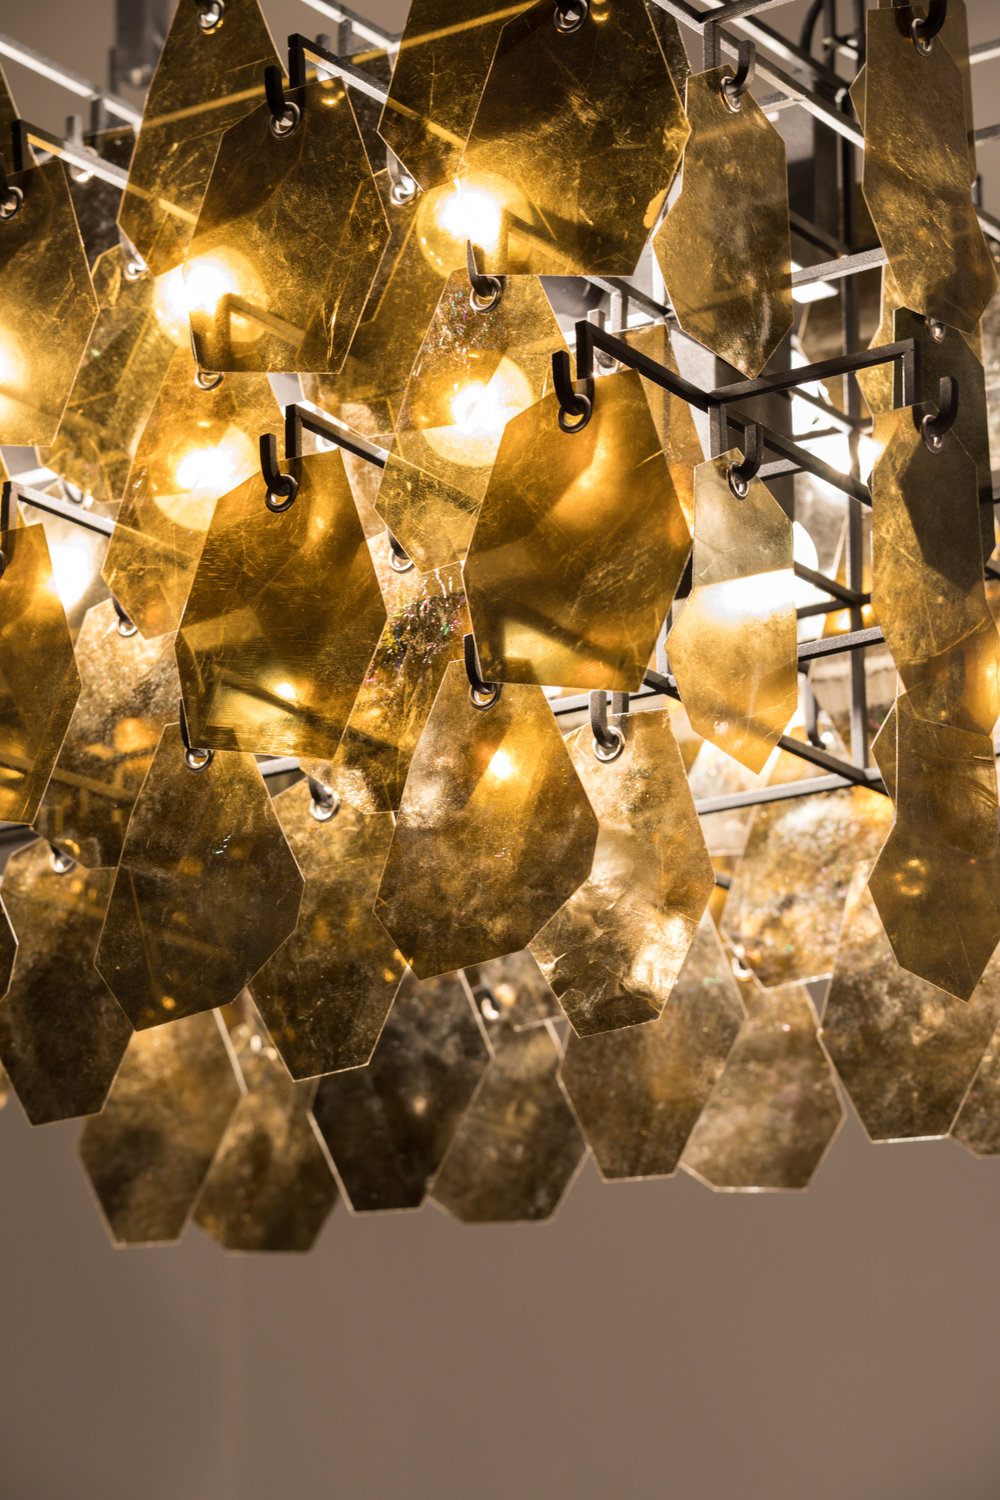 Alexander_Lamont_Sapucaí_Chandelier_mica_stainless_steel_MSS_1201.jpg